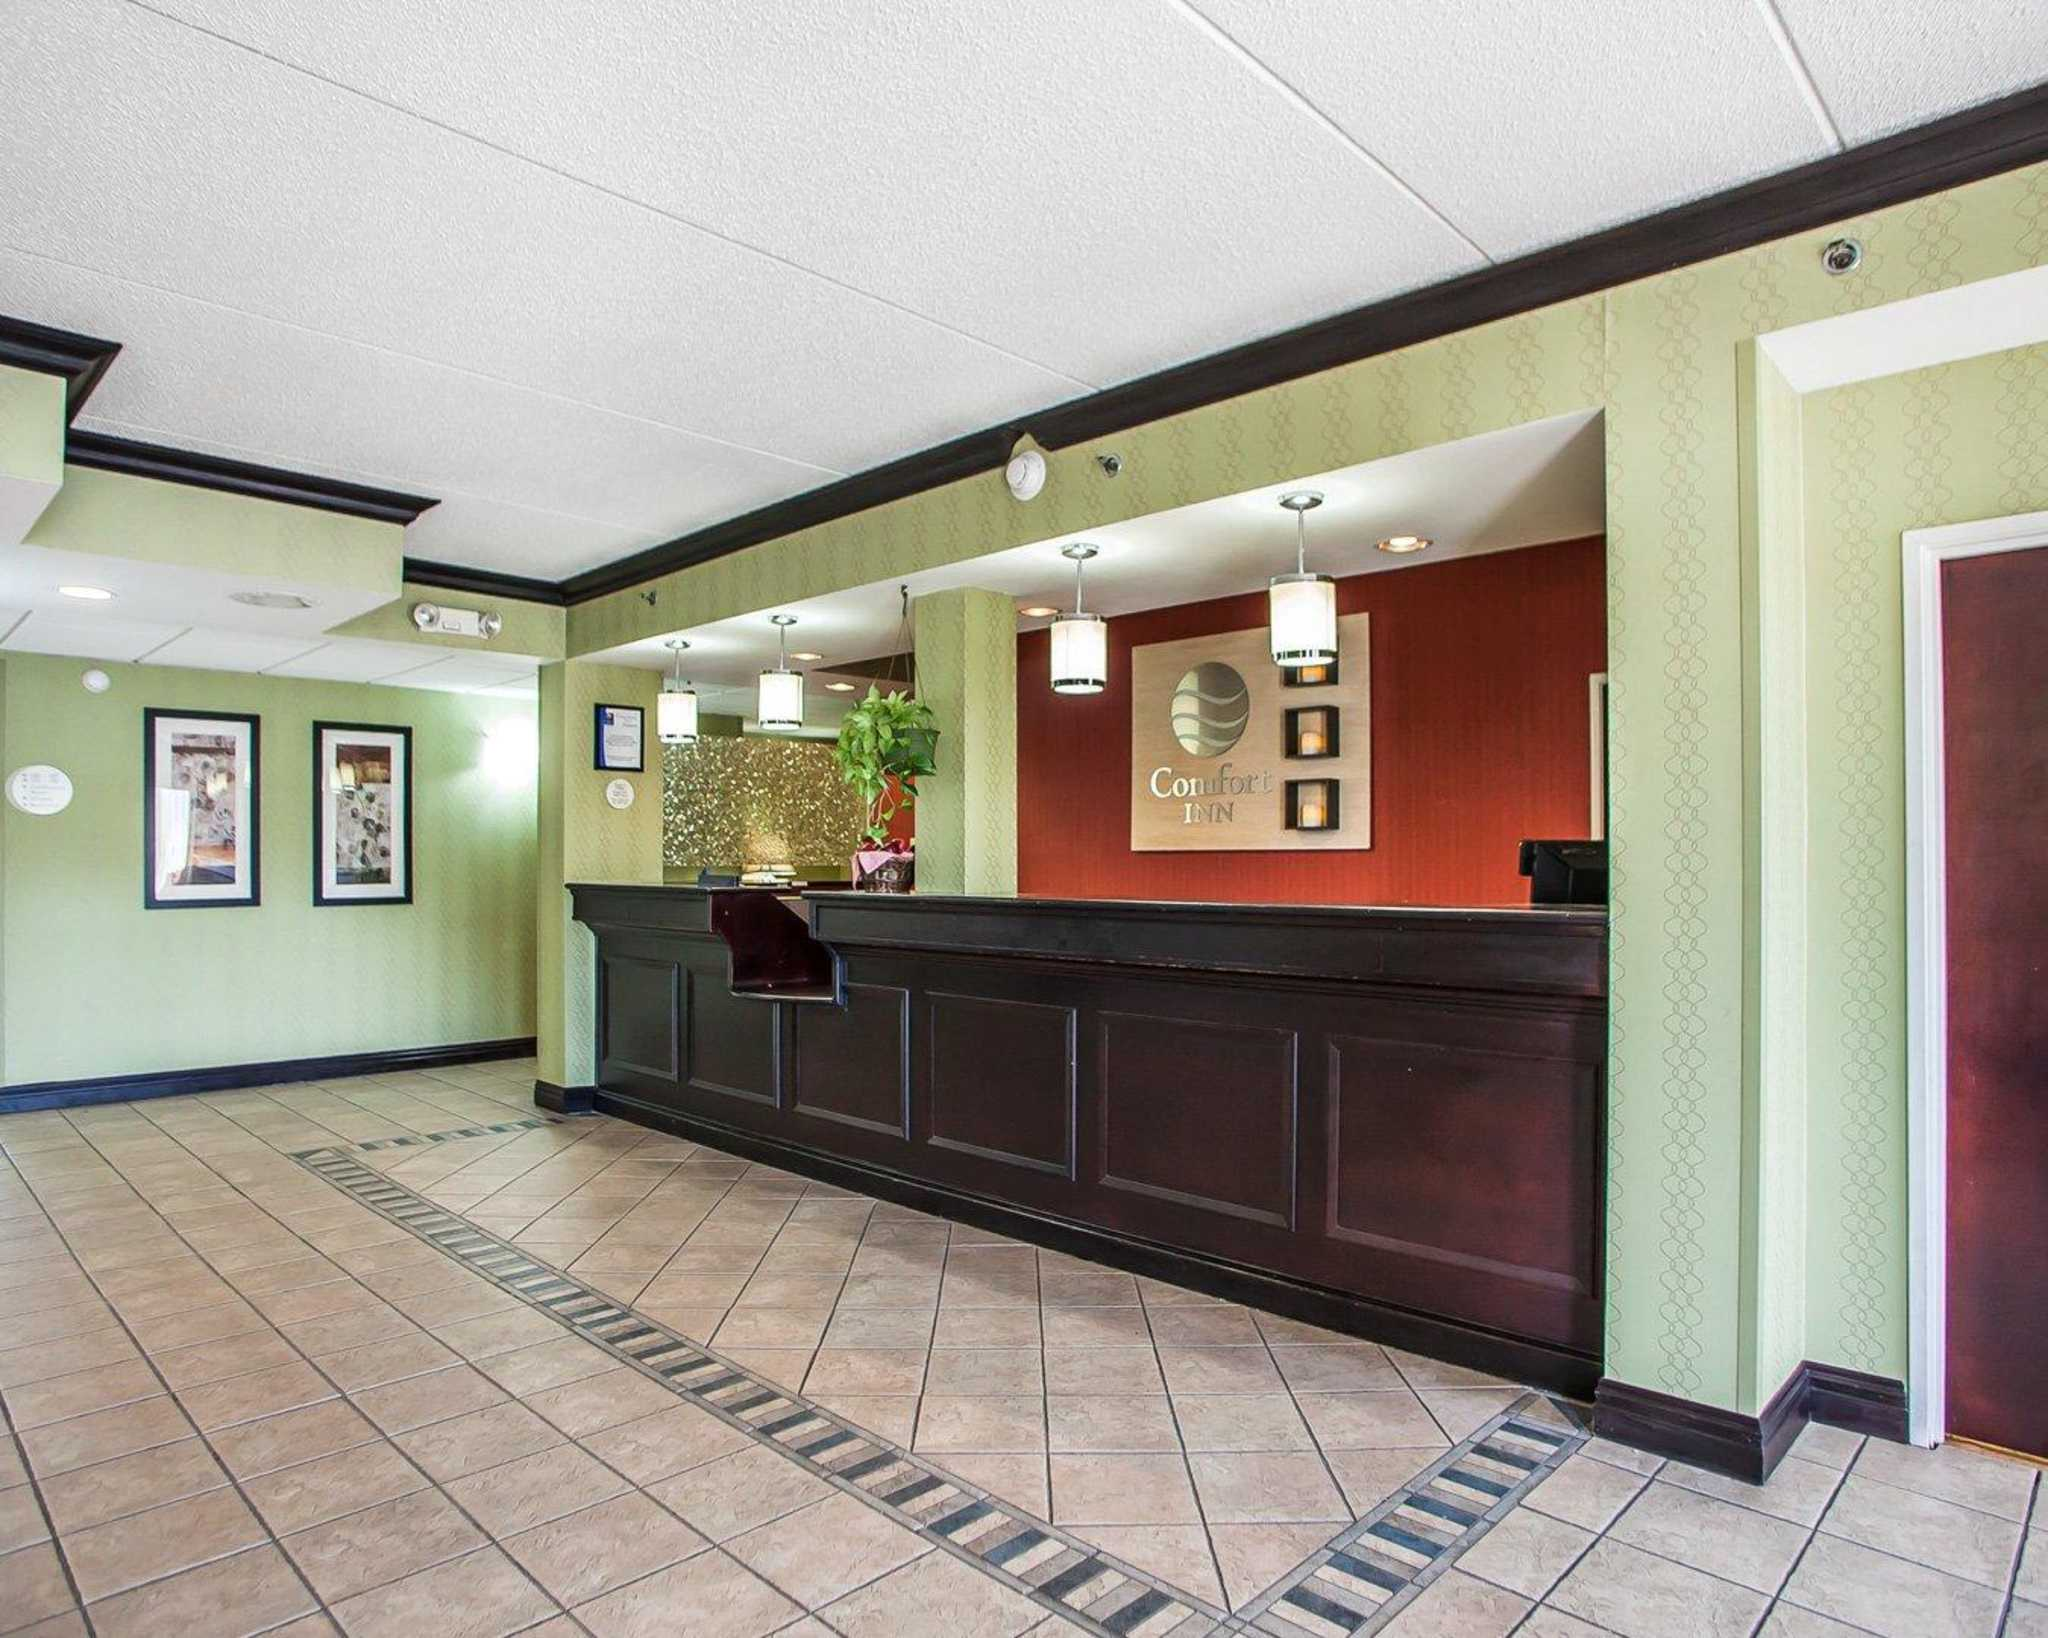 Comfort Inn Lehigh Valley West image 16